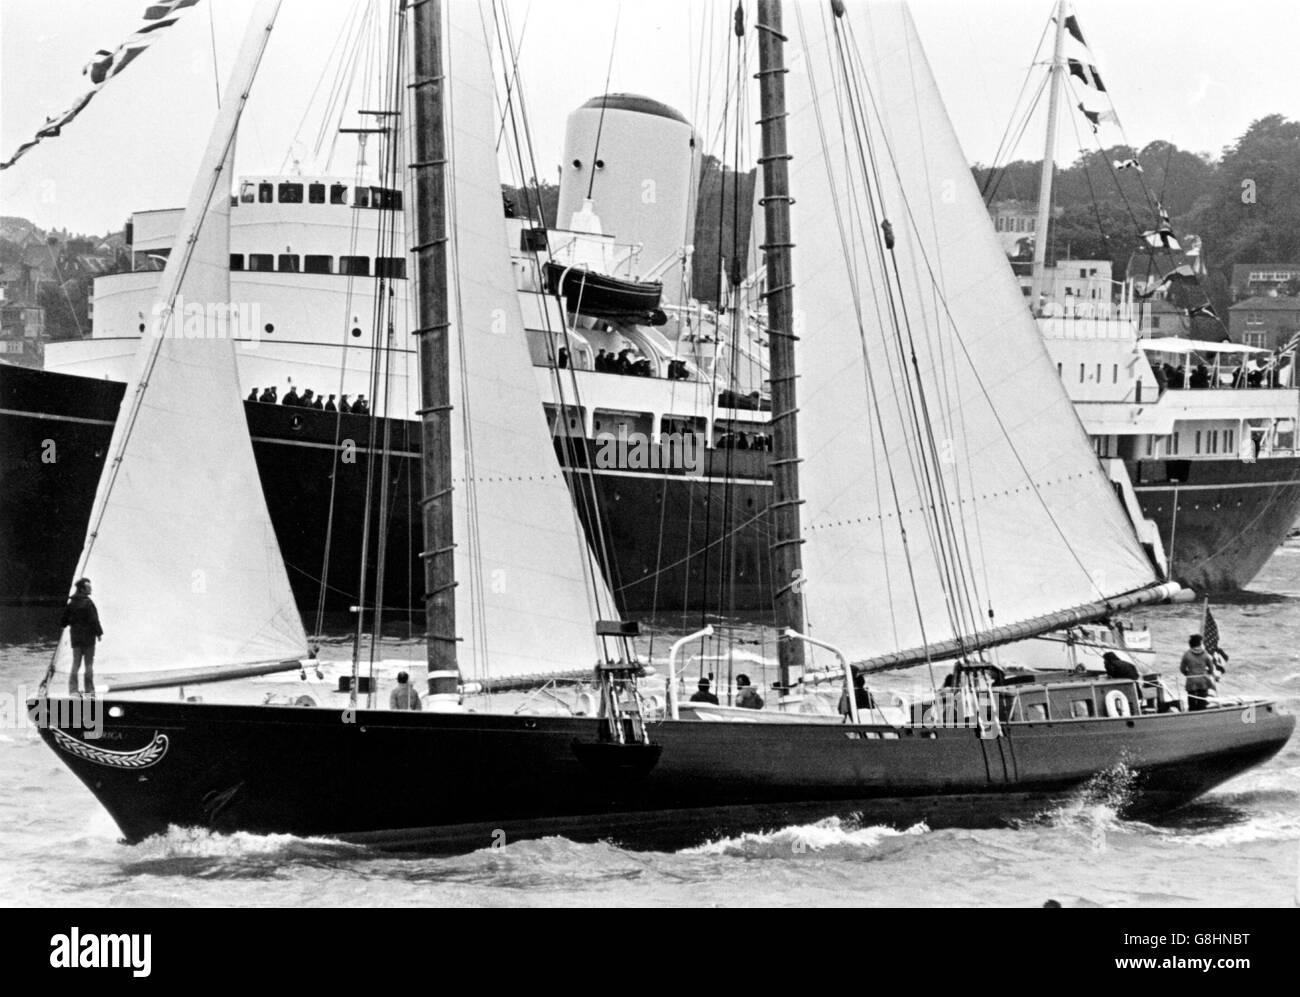 AJAXNETPHOTO. 4TH AUGUST,1974. COWES, ENGLAND. - REPLICA YACHT - THE AMERICAN SCHOONER AMERICA MINUS ITS BOWSPRIT, - Stock Image